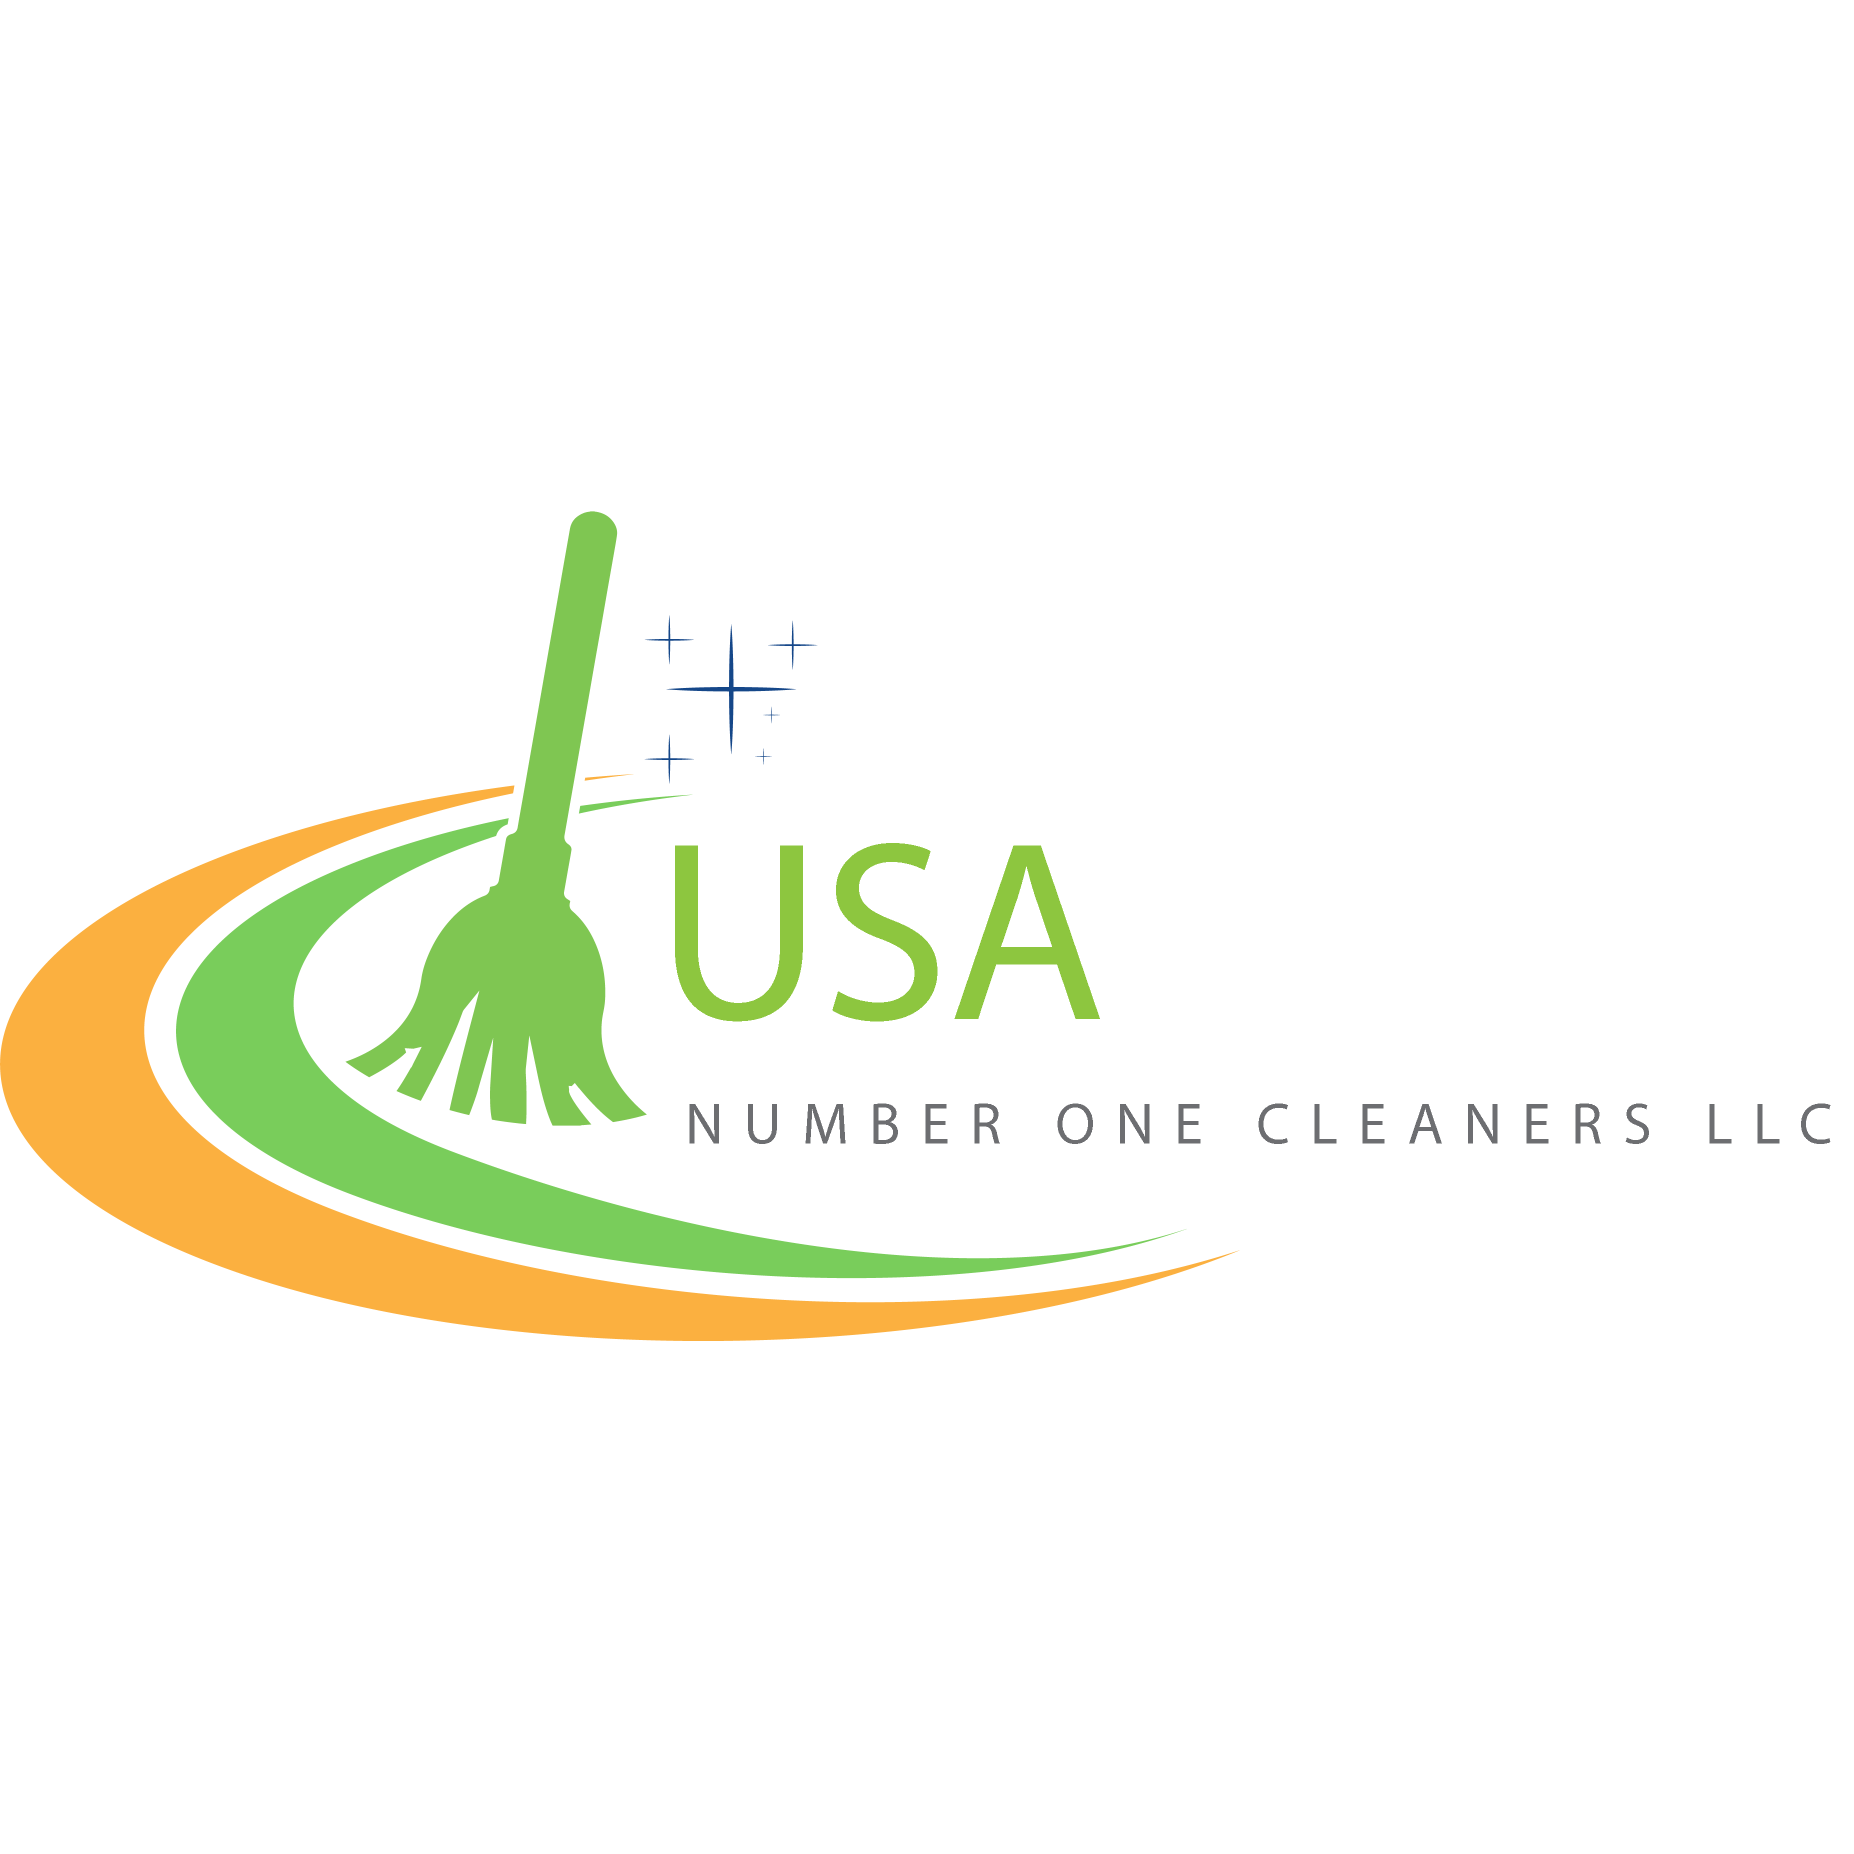 USA Number One Cleaners LLC